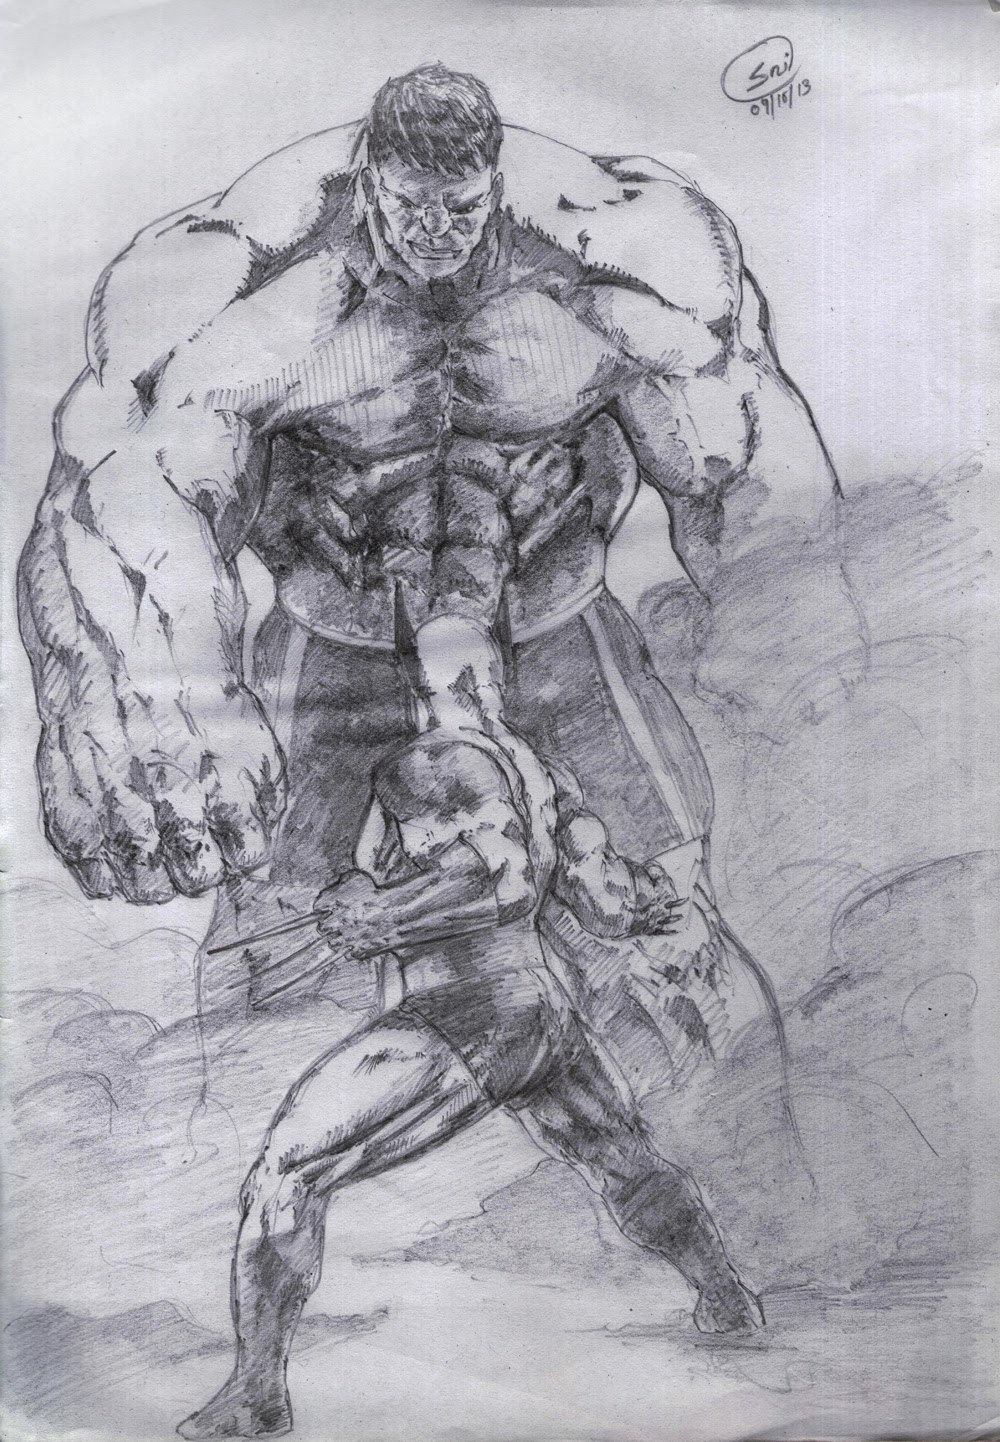 Famous sketch art of hulk vs wolverine a2ztuts